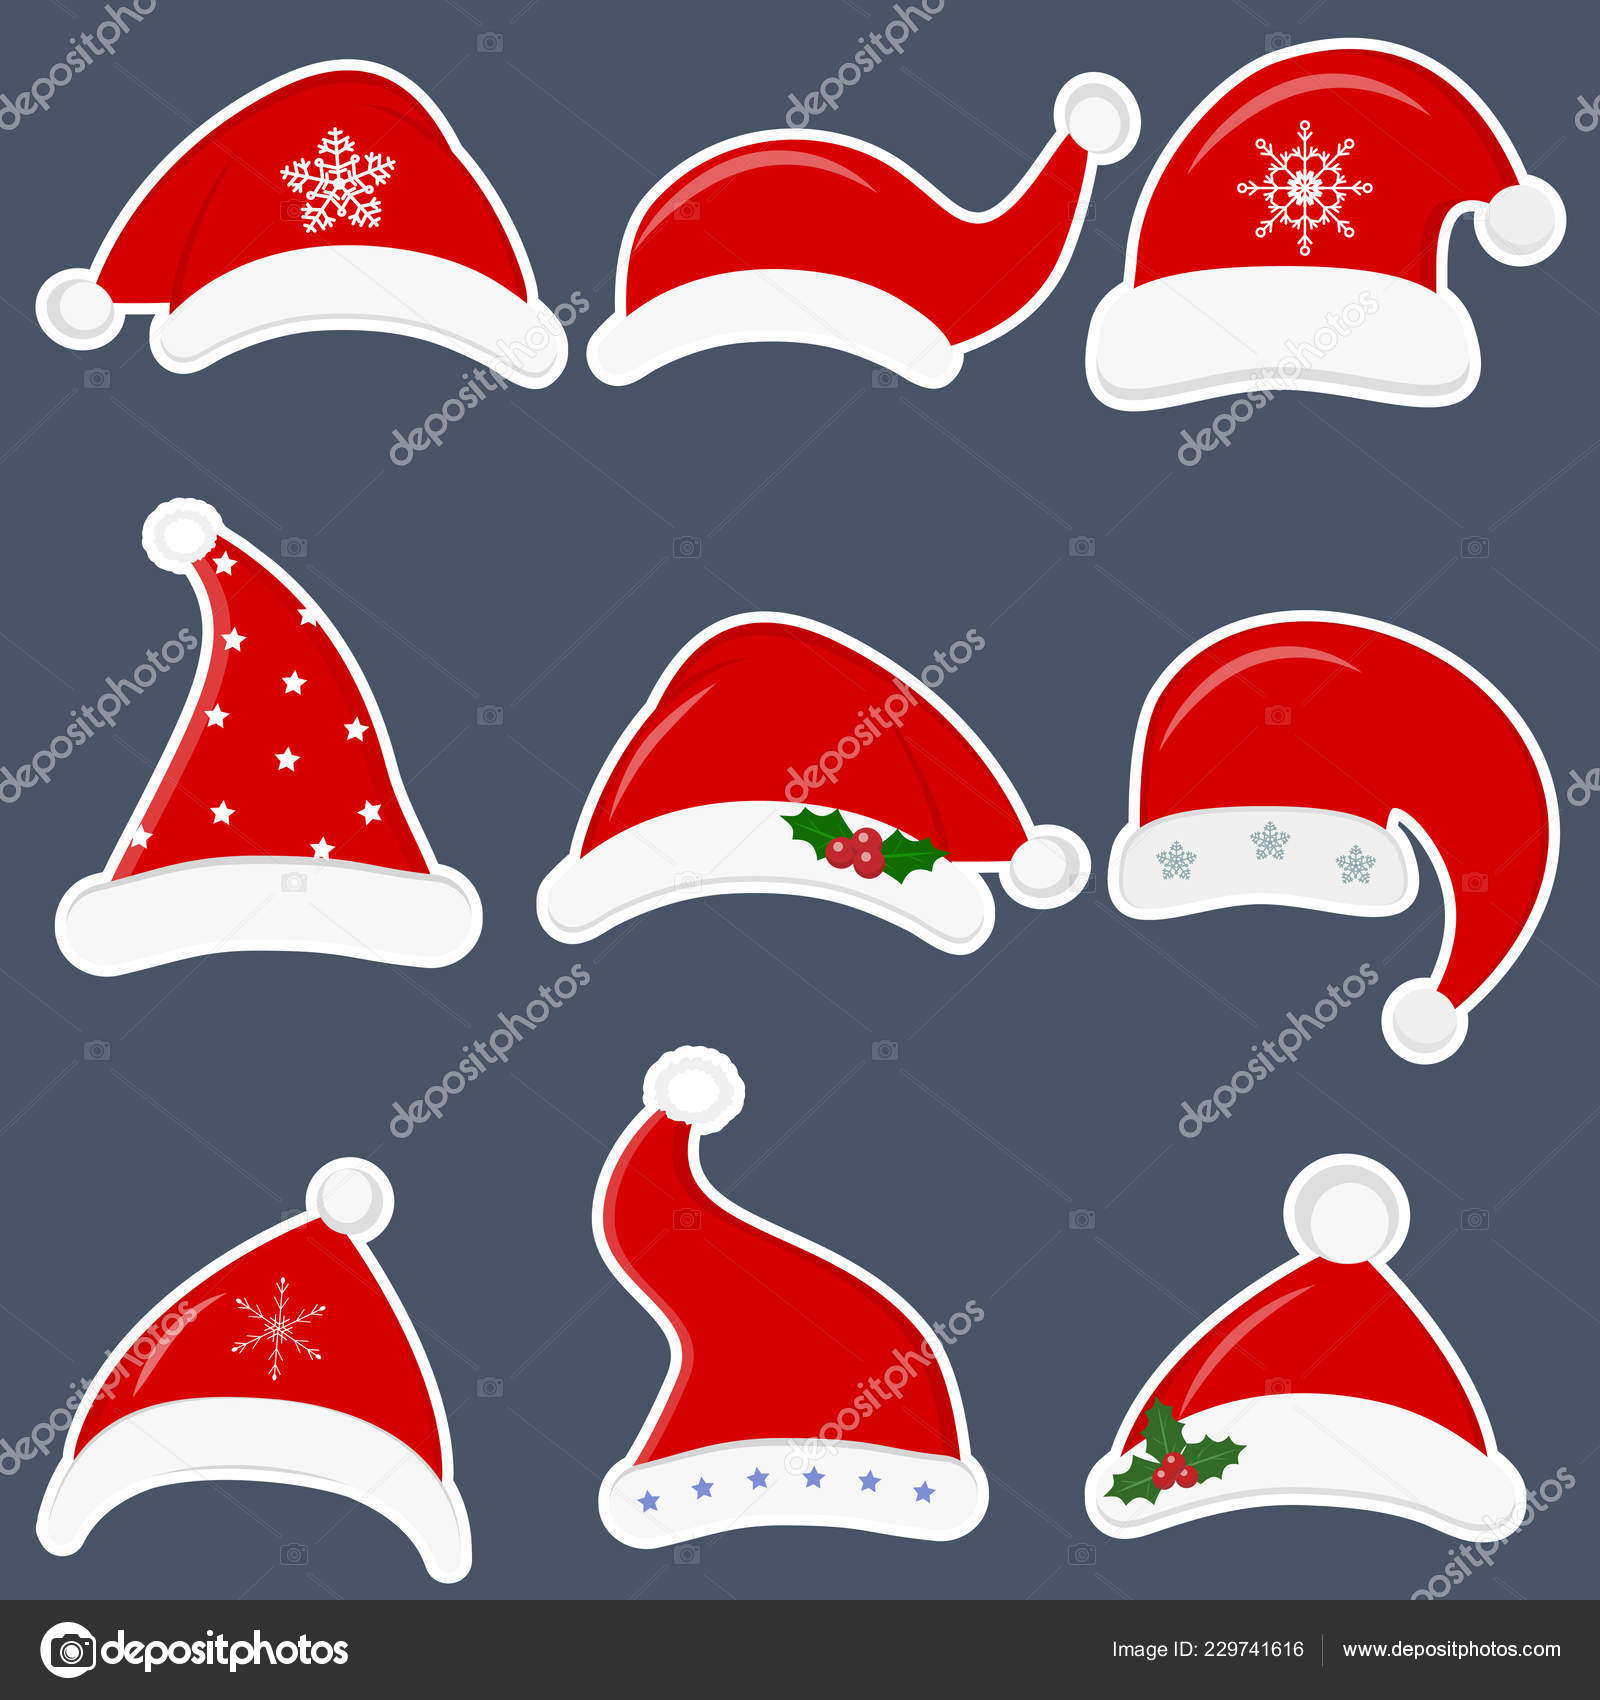 9cc0ebe670c81 Happy New Year and Merry Christmas. Set of nine different santa hats  stickers with various accessories isolated on dark background. Flat style